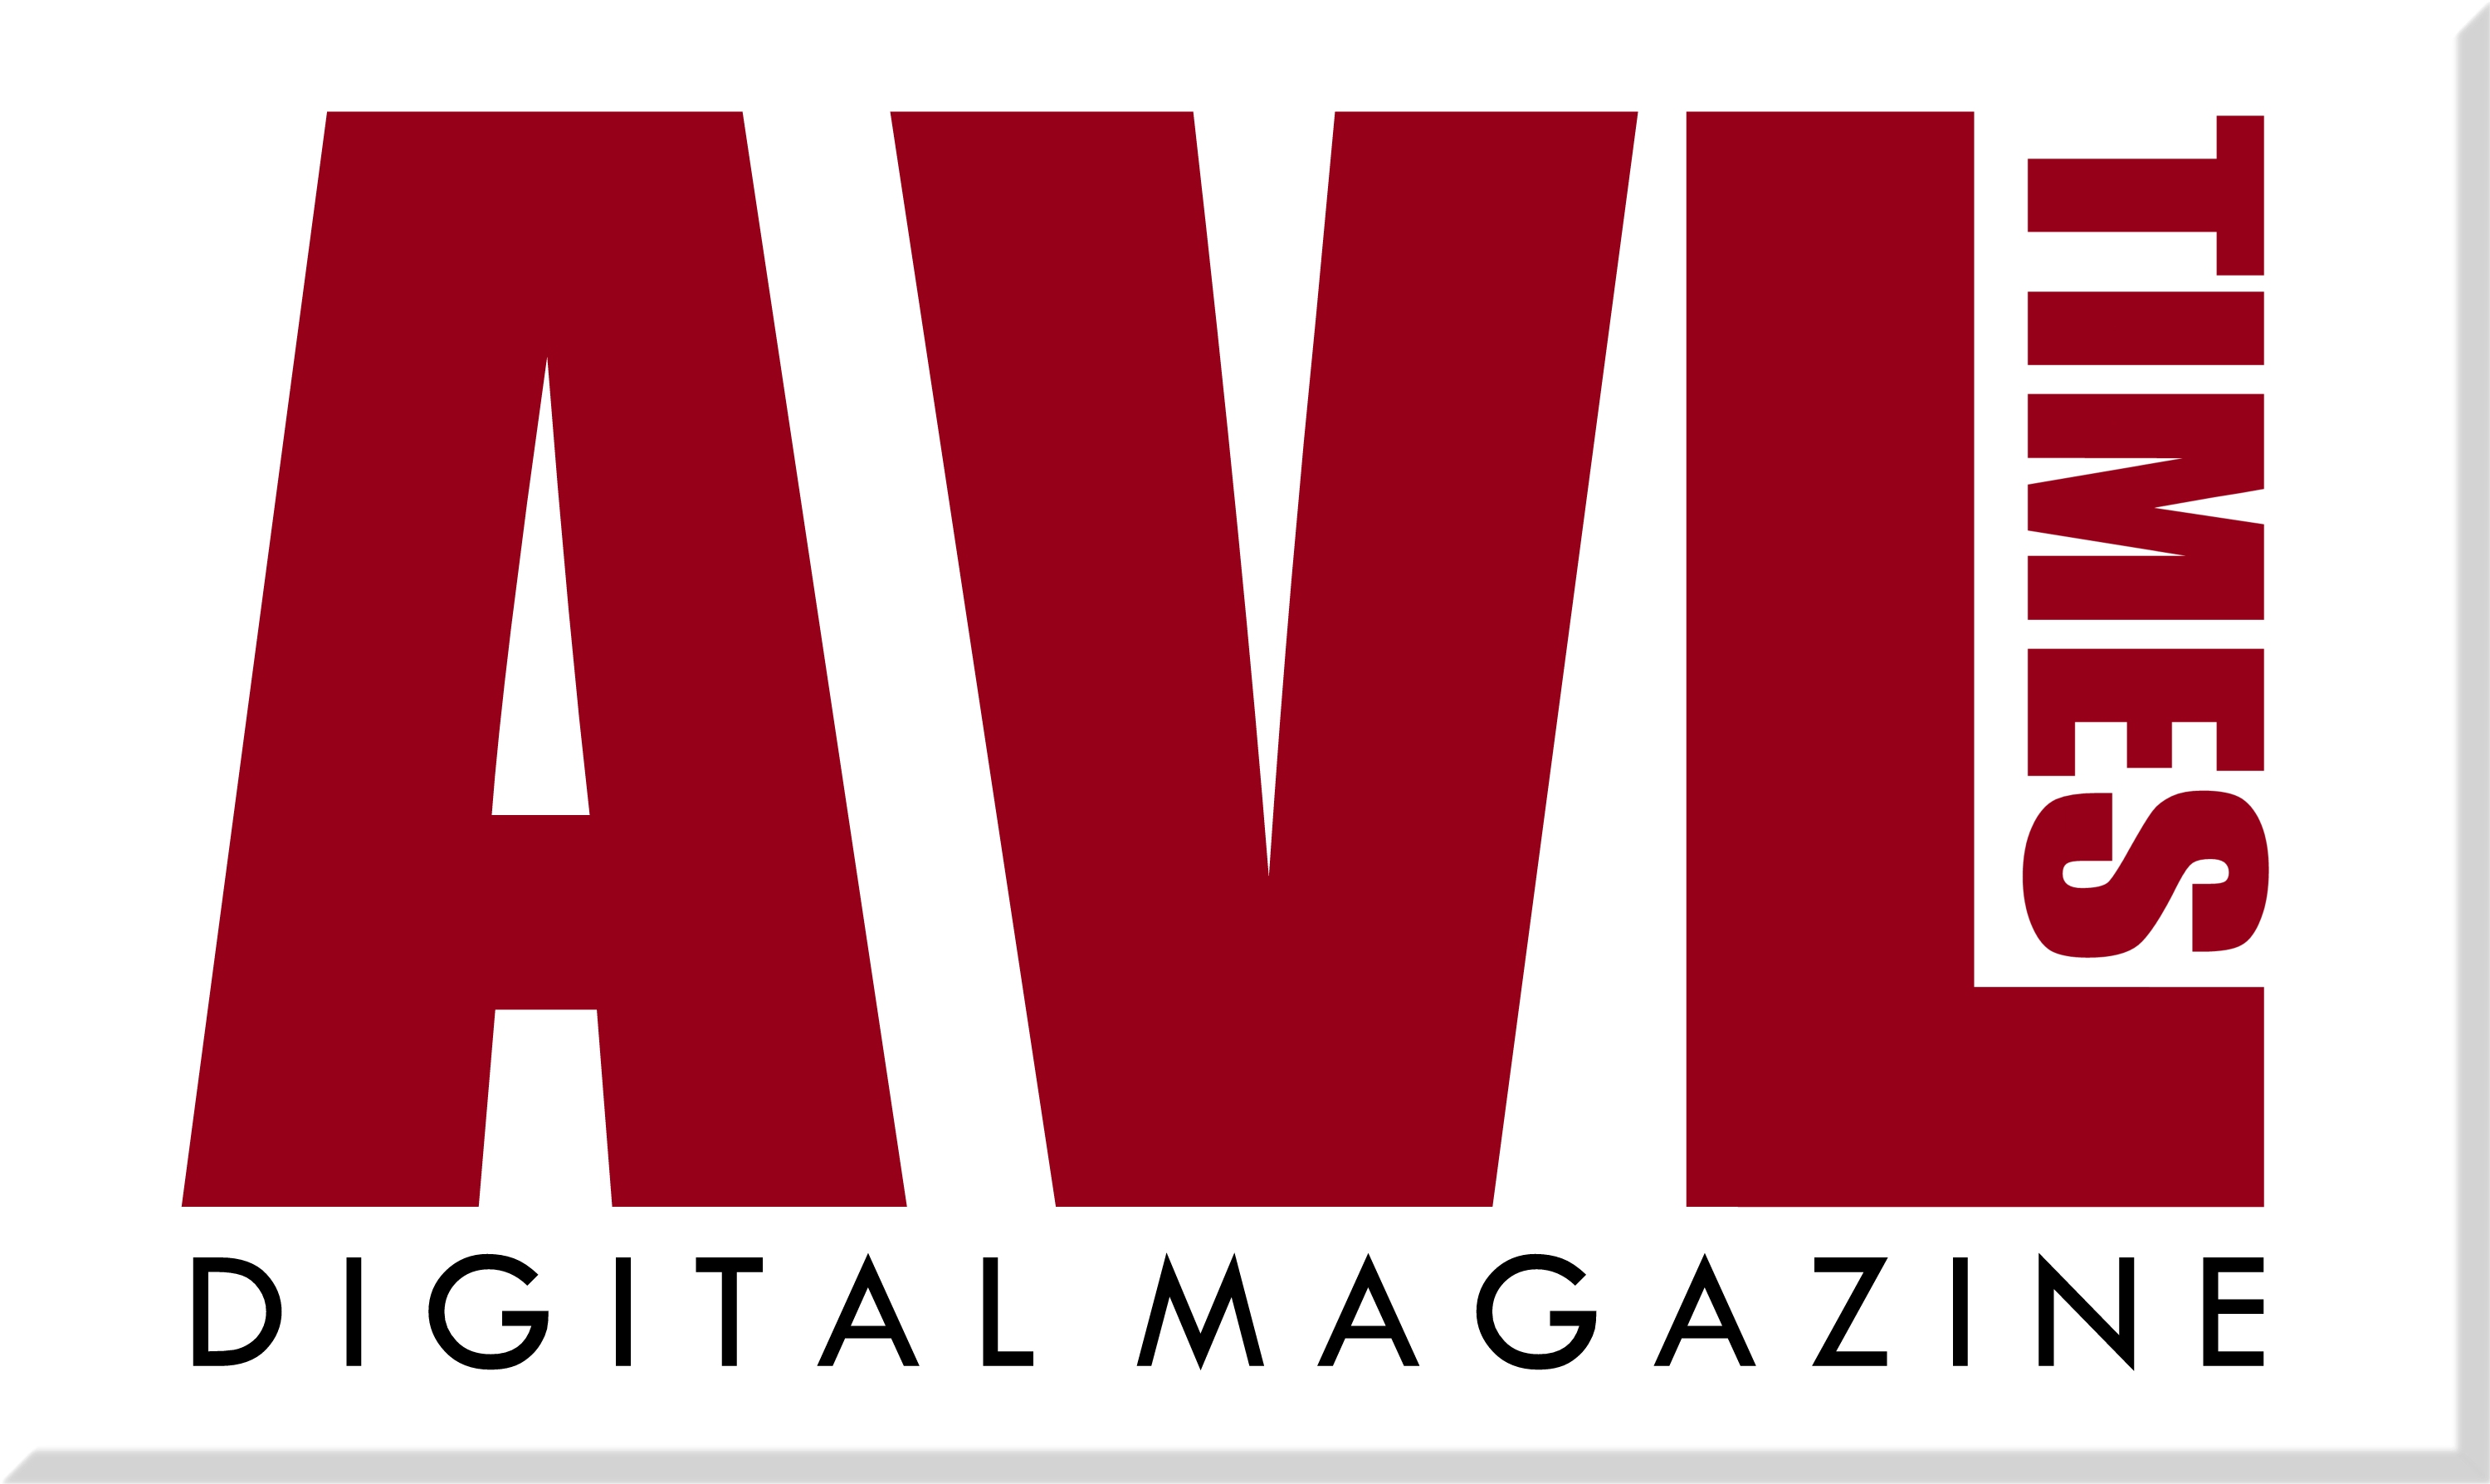 AVL APAC 2020 LOGO (150,0,24) - digital magazine